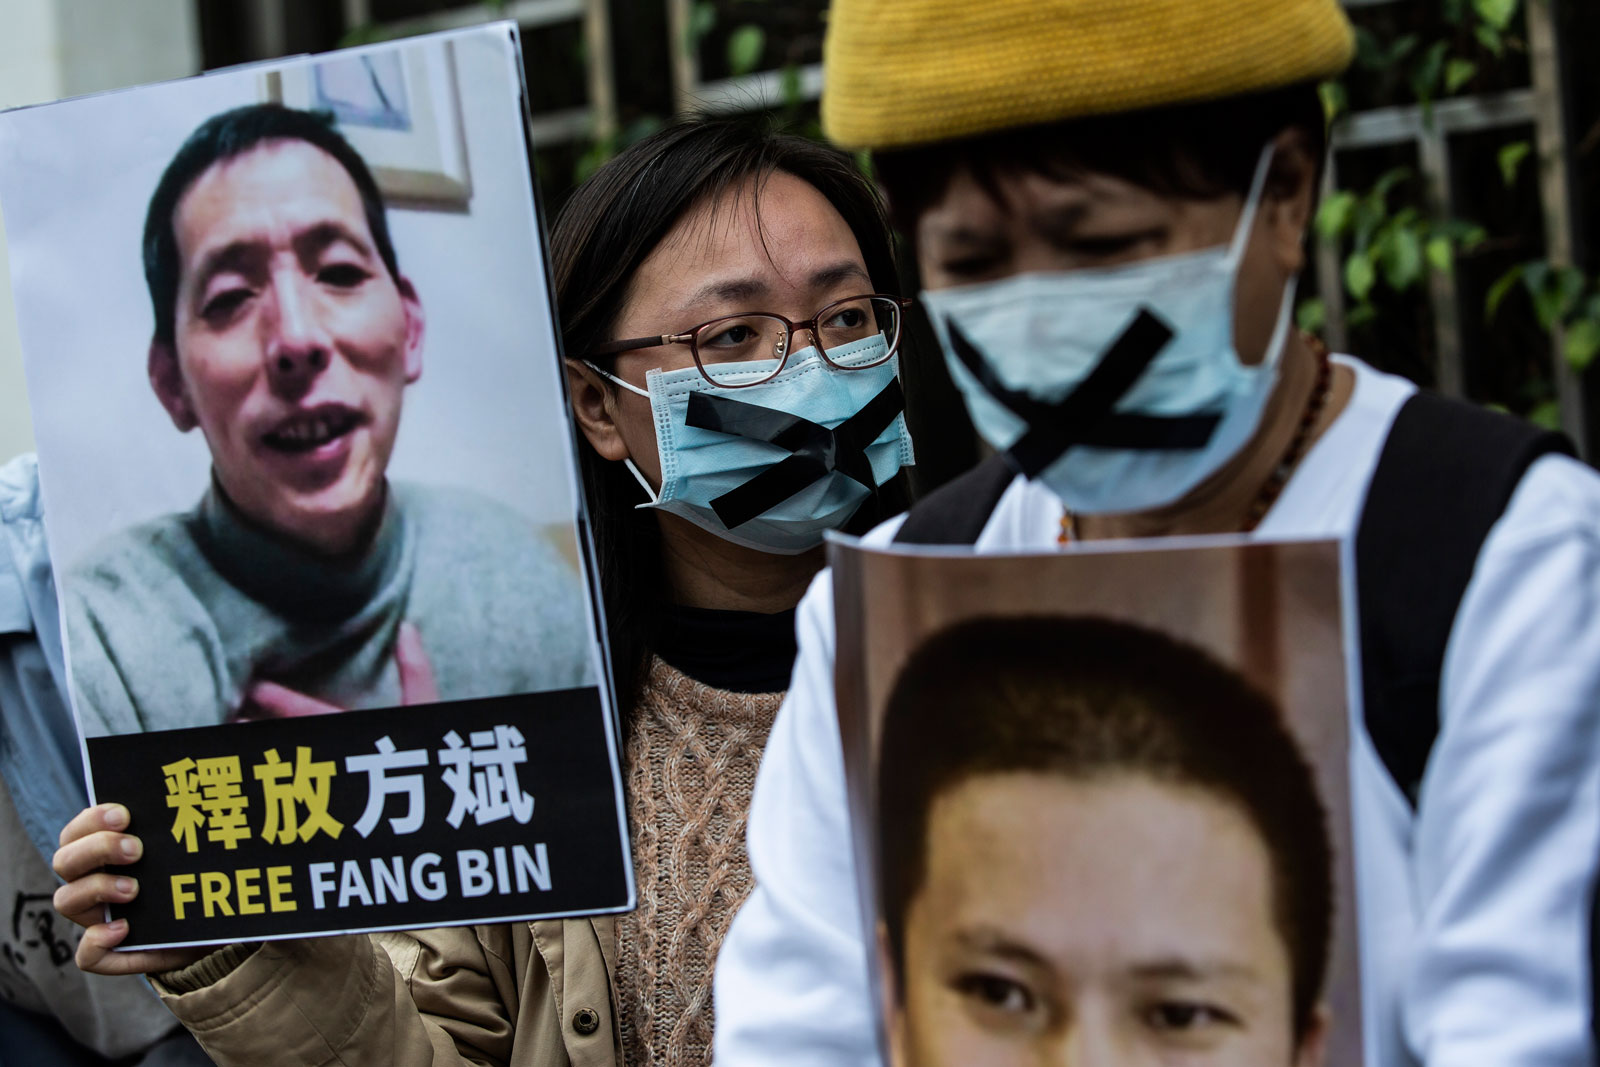 Pro-democracy activists holding pictures of missing citizen journalist Fang Bin and anti-corruption activistXu Zhiyong, who had been interrogating President Xi Jinping's handling of the Covid-19 crisis, at a protest outside the Chinese liaison office in Hong Kong, February 19, 2020